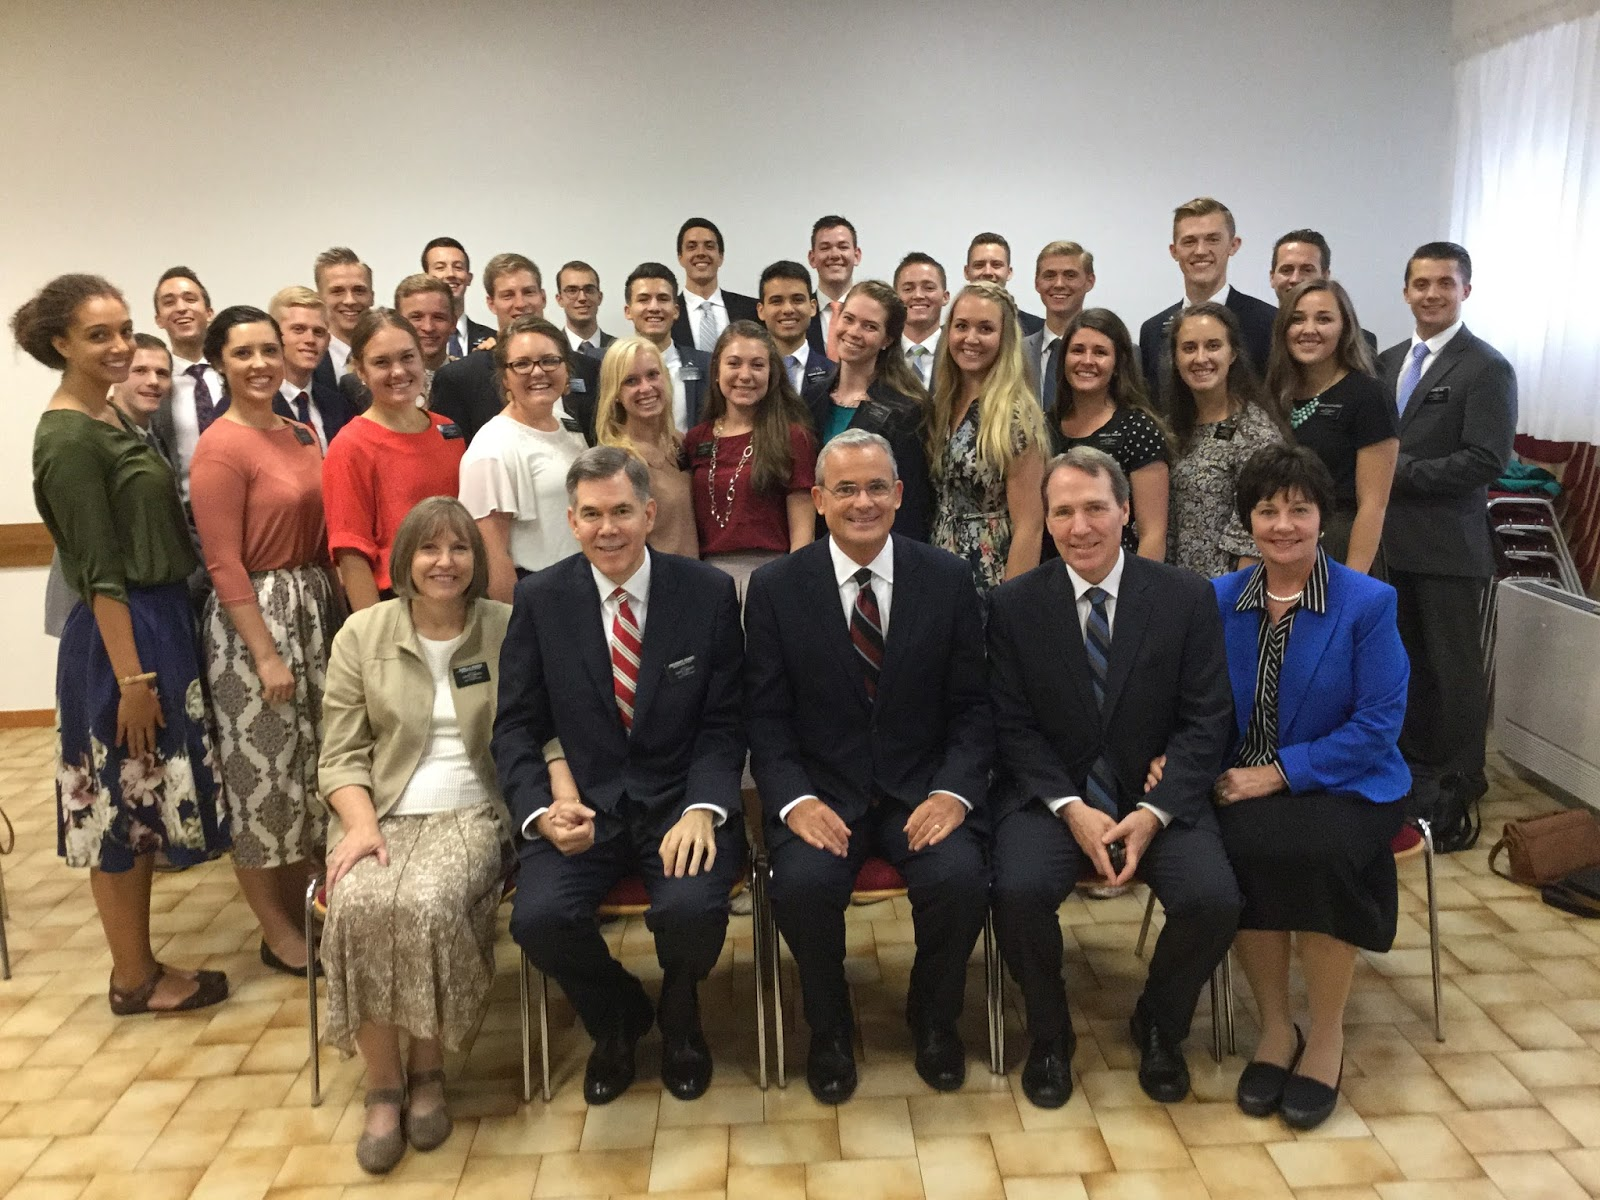 Mission leadership conference in Rome, September, 2016